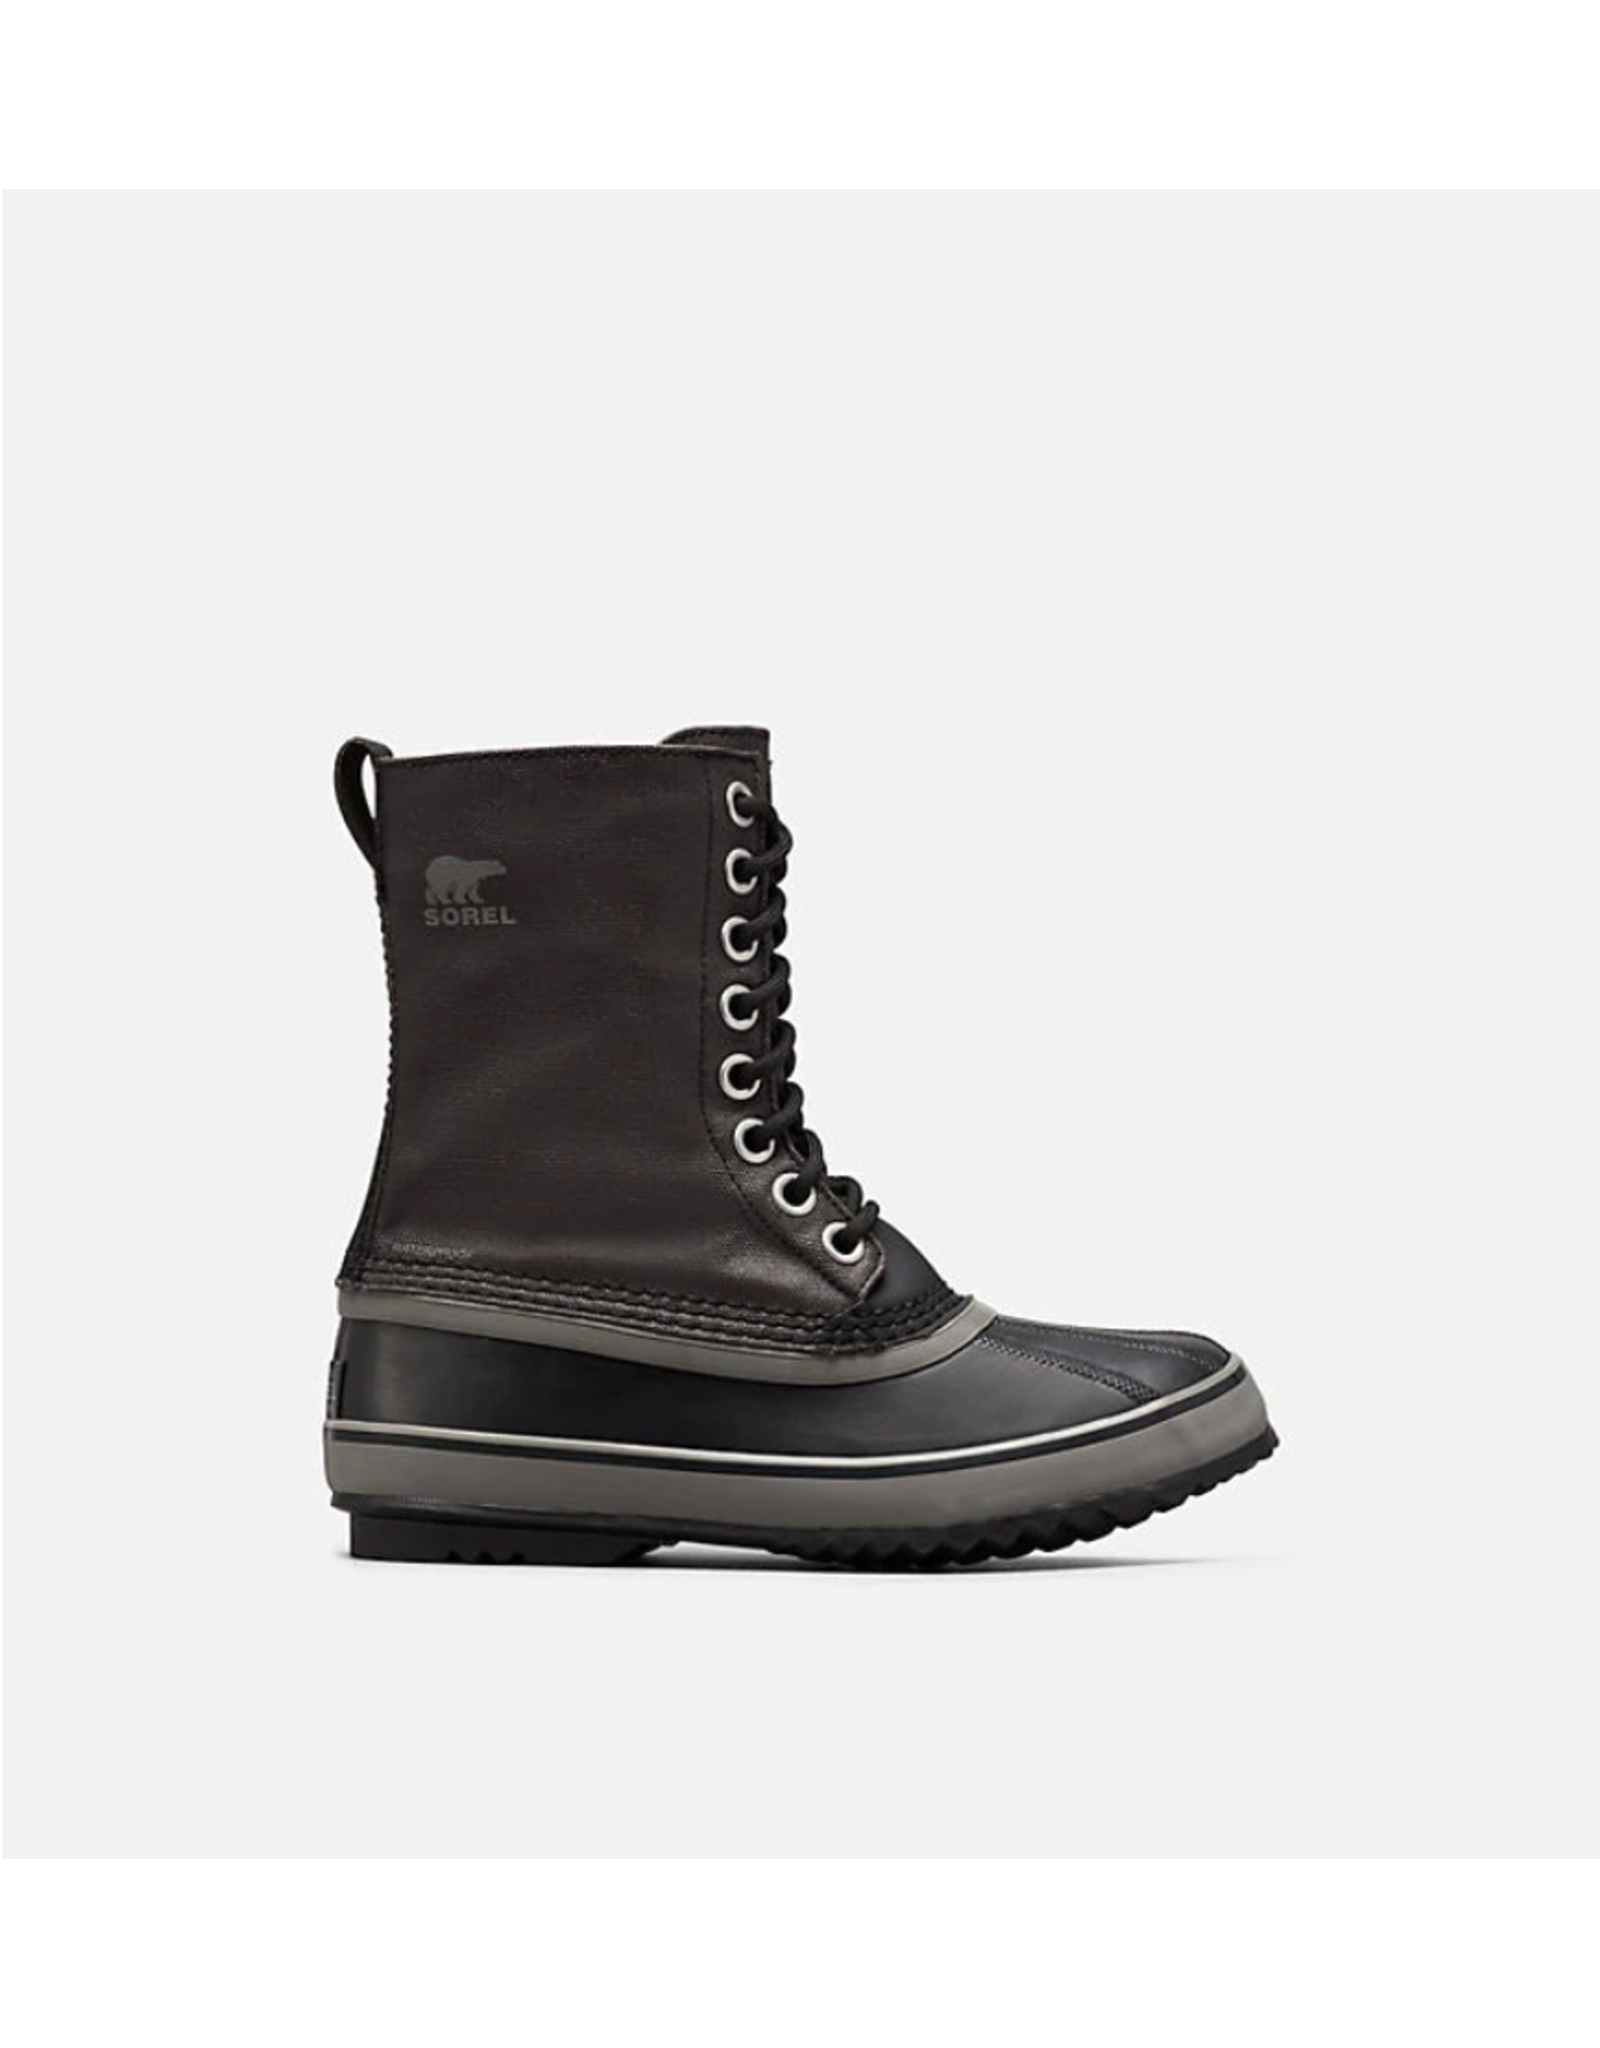 sorel sorel 1964 CVS boot